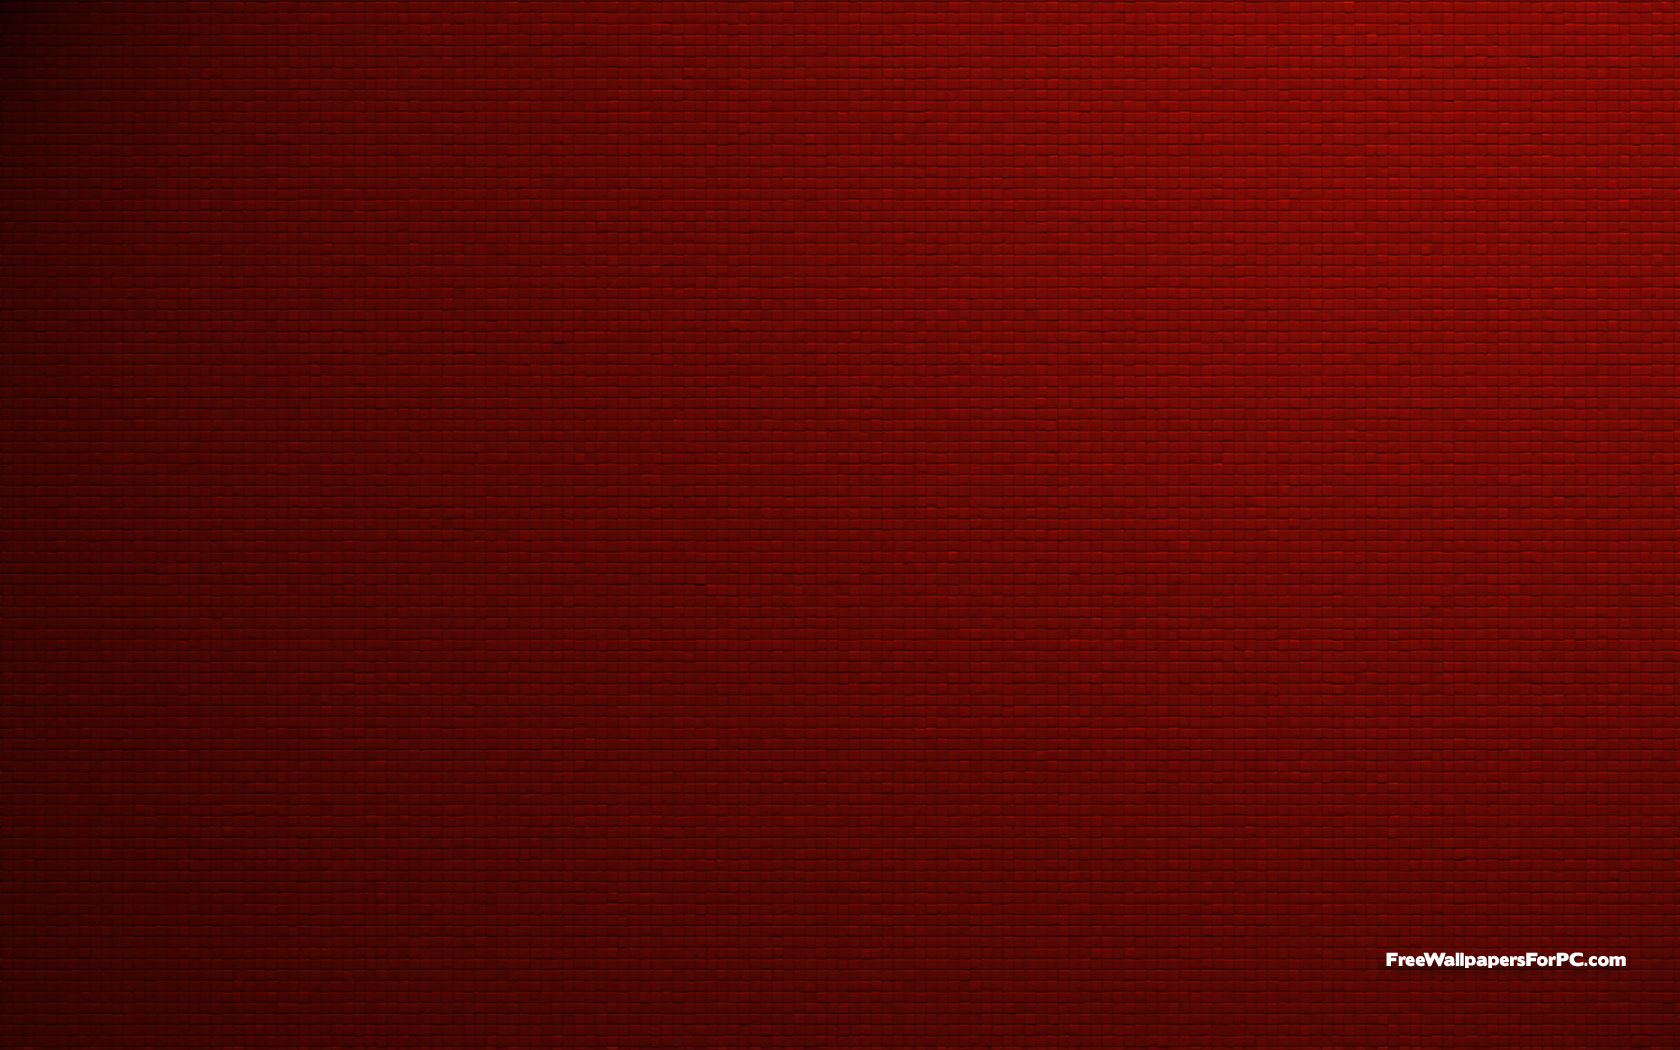 Red Abstract Artistic Pc Free 286294 Wallpaper wallpaper